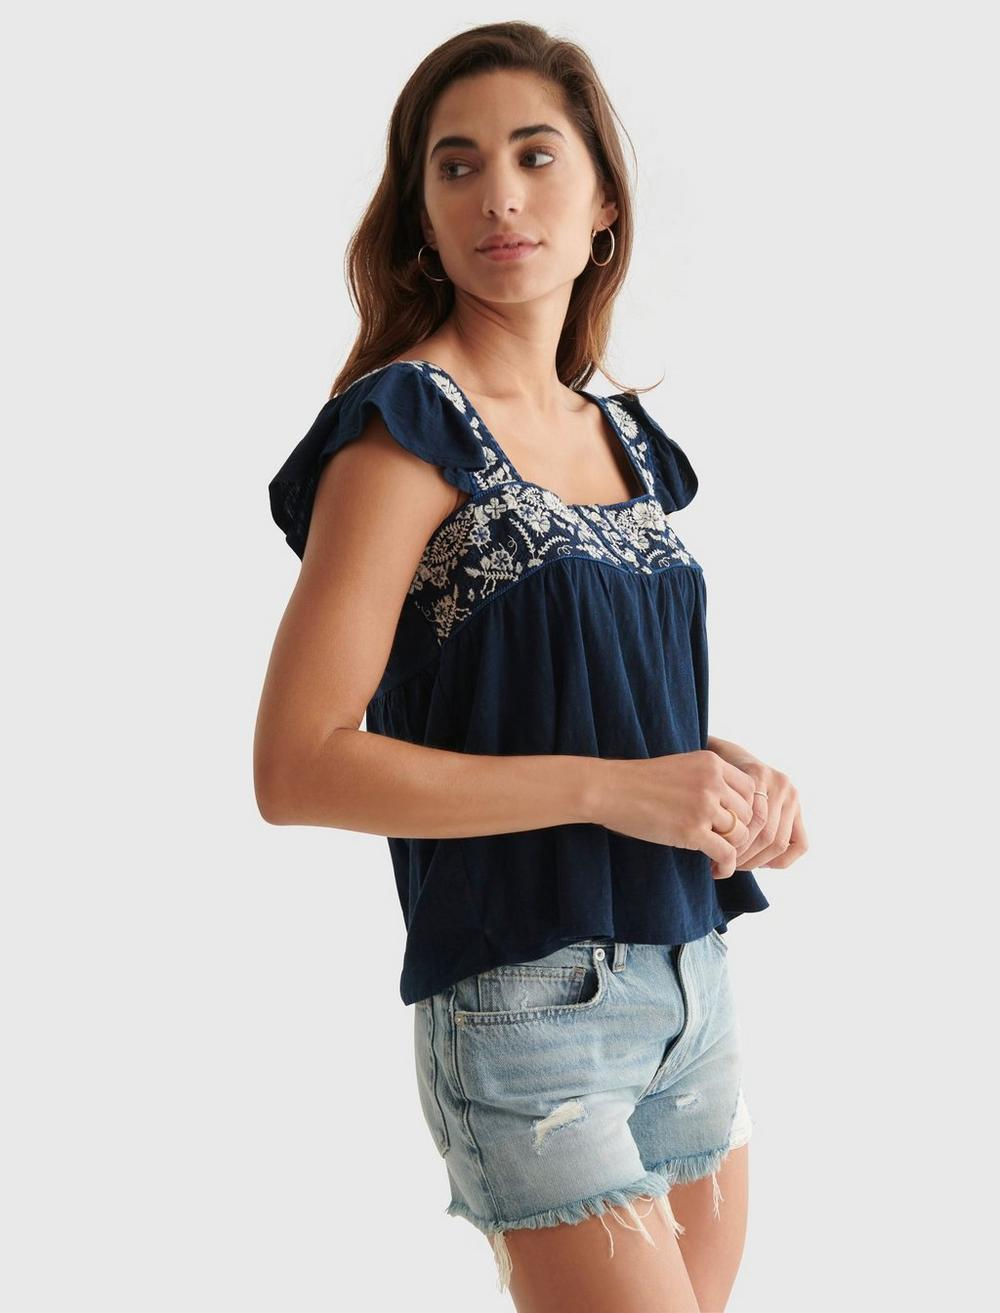 EMBROIDERED SQUARE BUTTON TOP, image 3